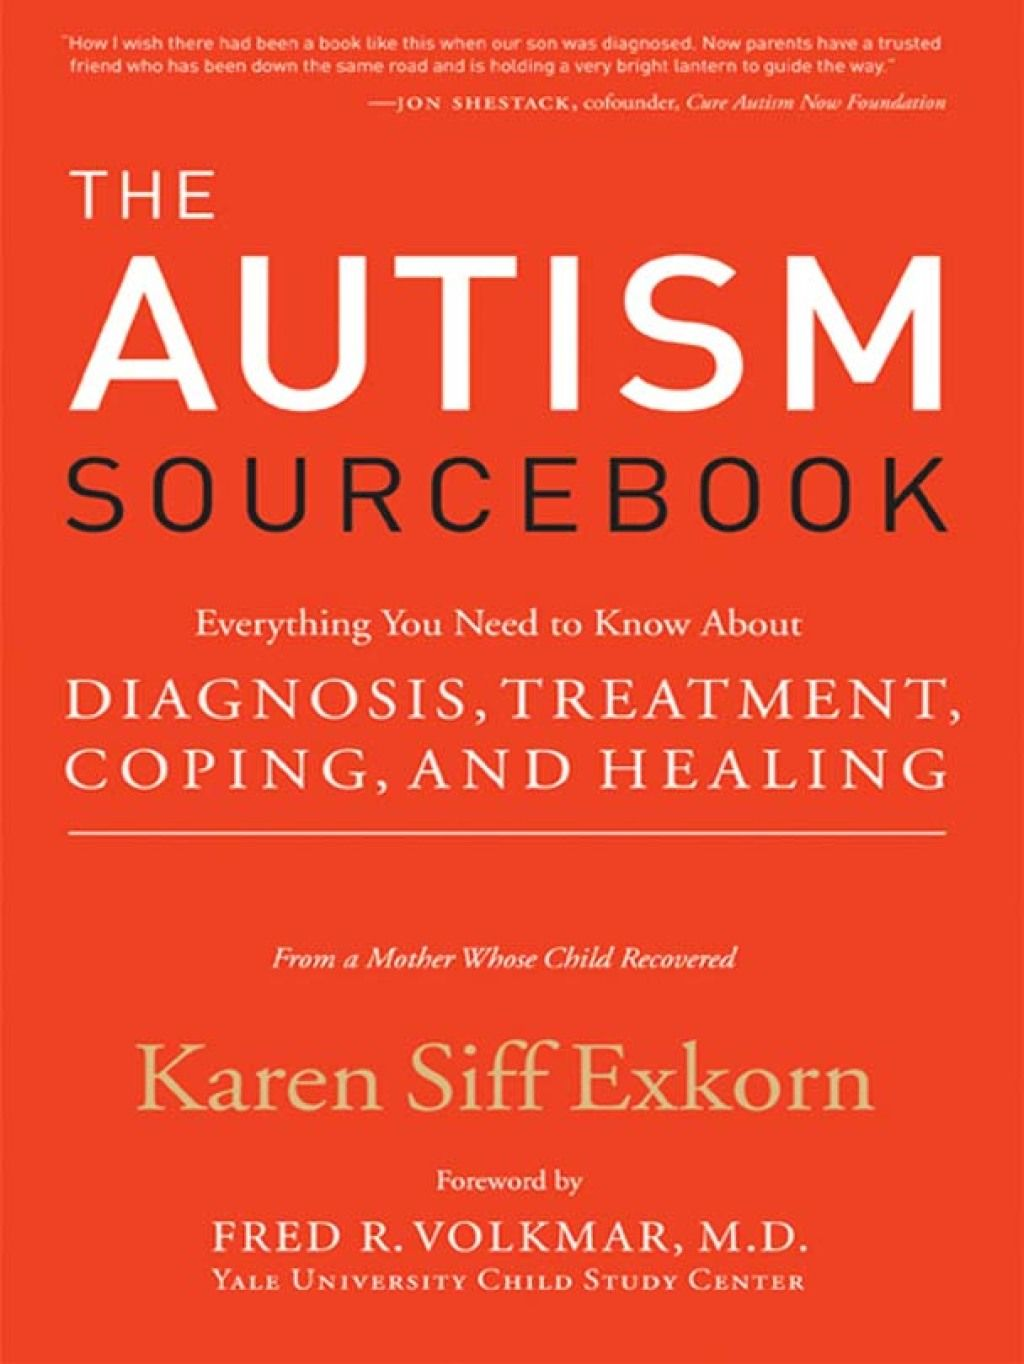 The Autism Sourcebook Ebook Diagnosis Reading Recommendations Autism Organizations